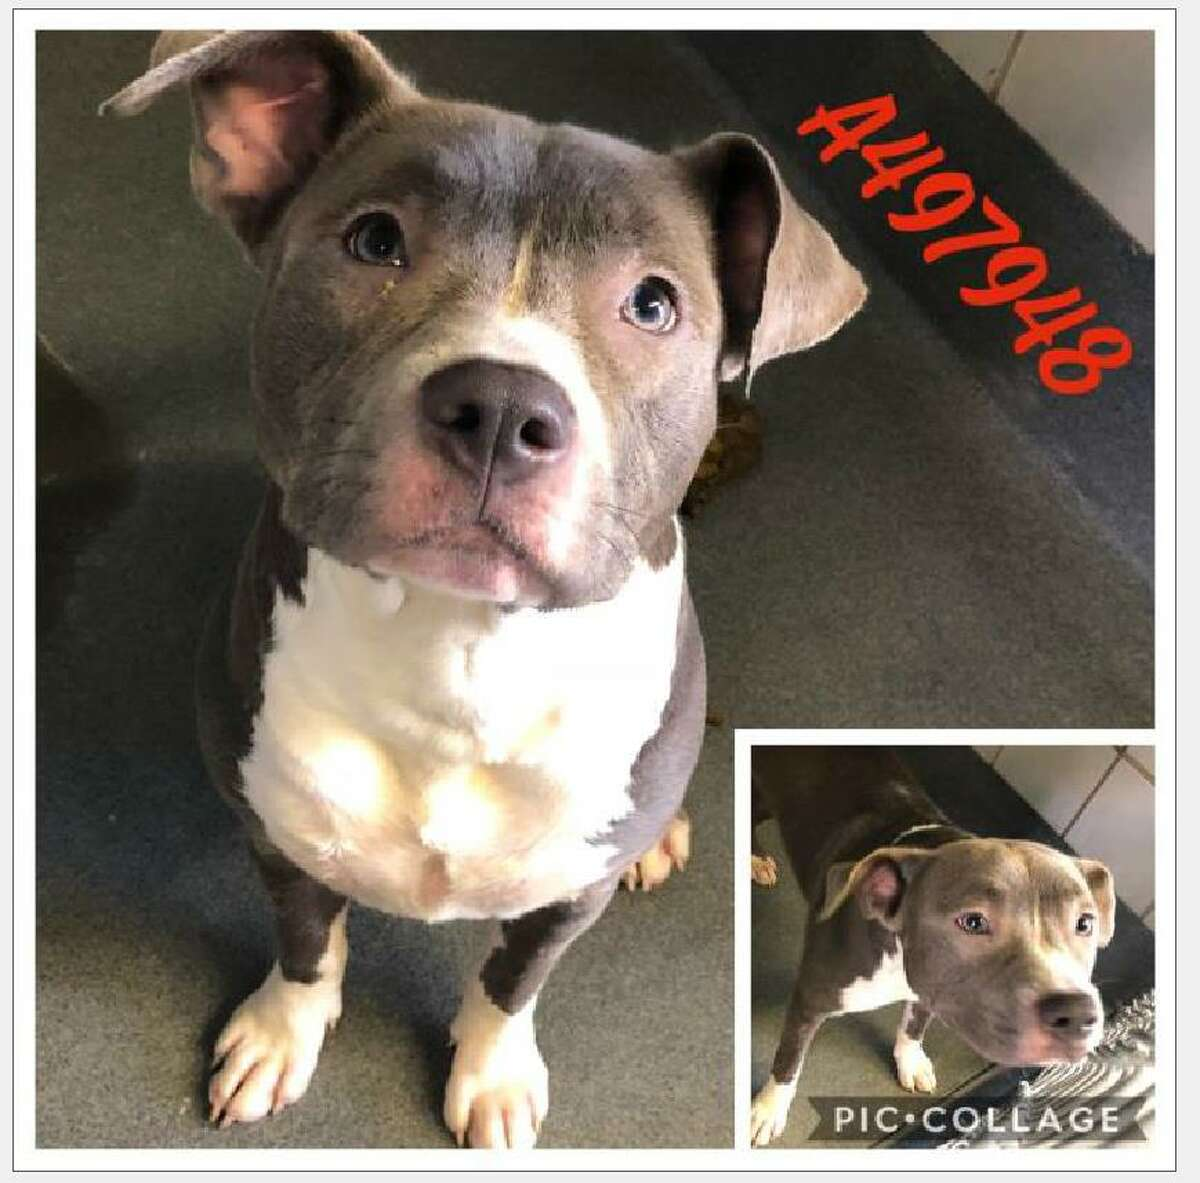 A female American Staffordshire Terrier named Pretty was taken from an Animal Care Services facility Sept. 6, 2018. The man who took Pretty was captured on security camera footage removing her from the kennel about 2 p.m. at the ACS facility, 4710 Texas 151.